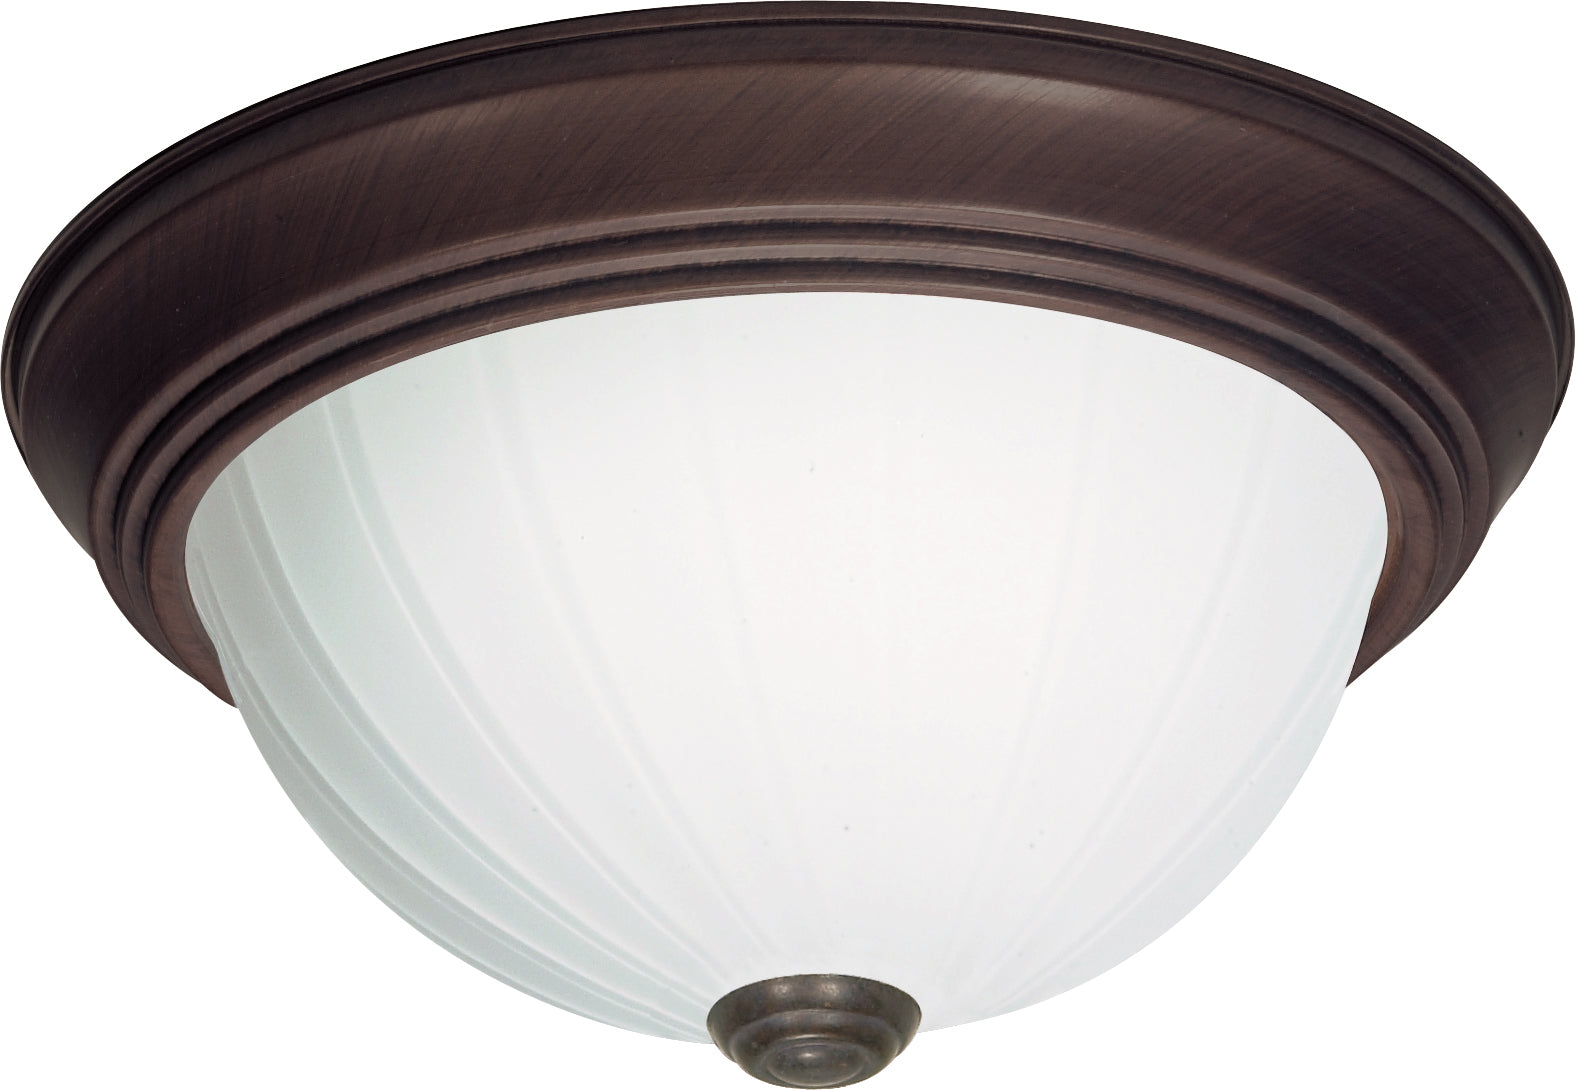 """2-Light 11"""" Flush Mounted Close-to-Ceiling Light Fixture in Old Bronze Finish"""